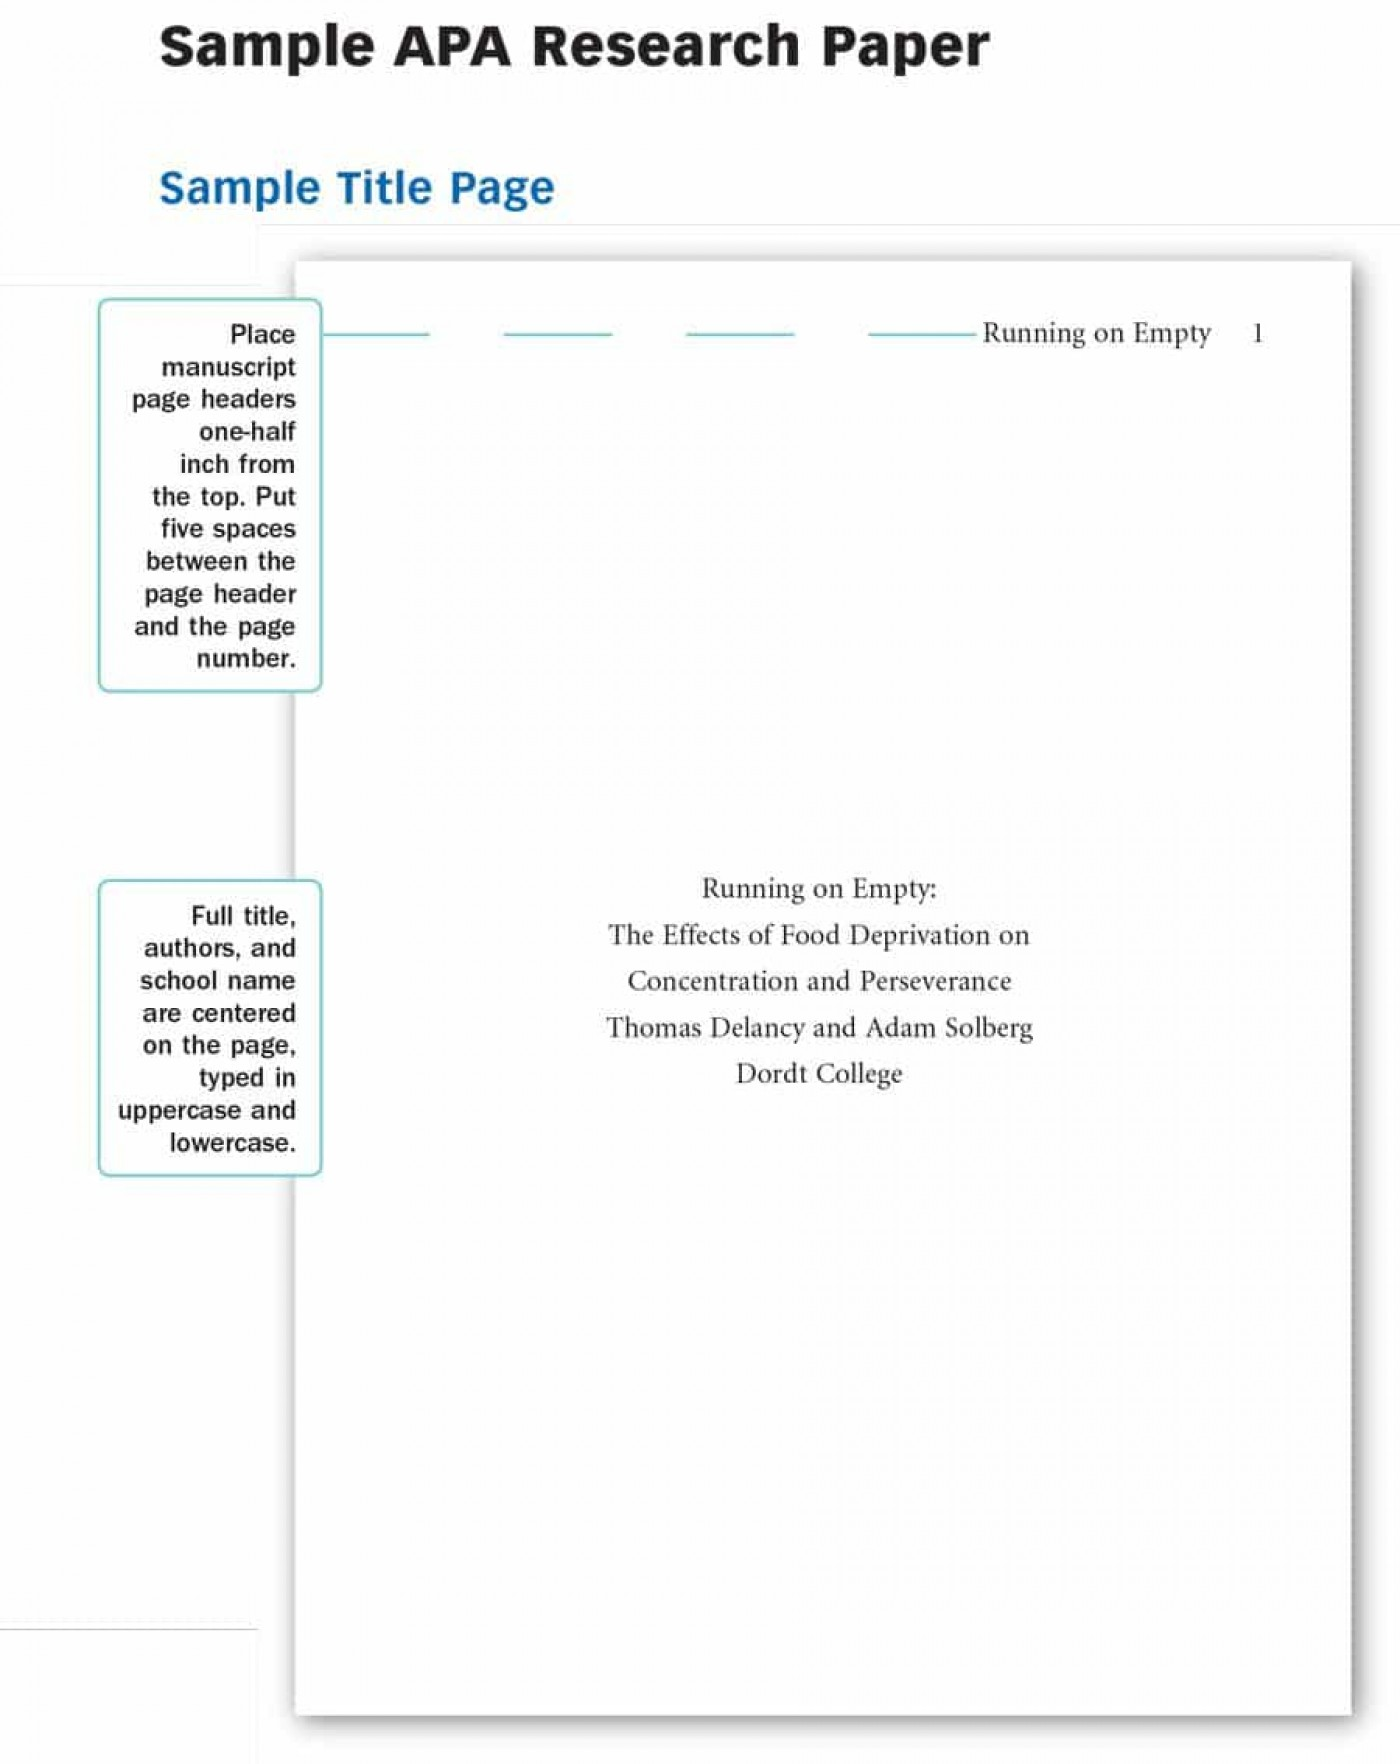 023 Research Paper Apa Template Style Guide For Writing Best Papers 1400